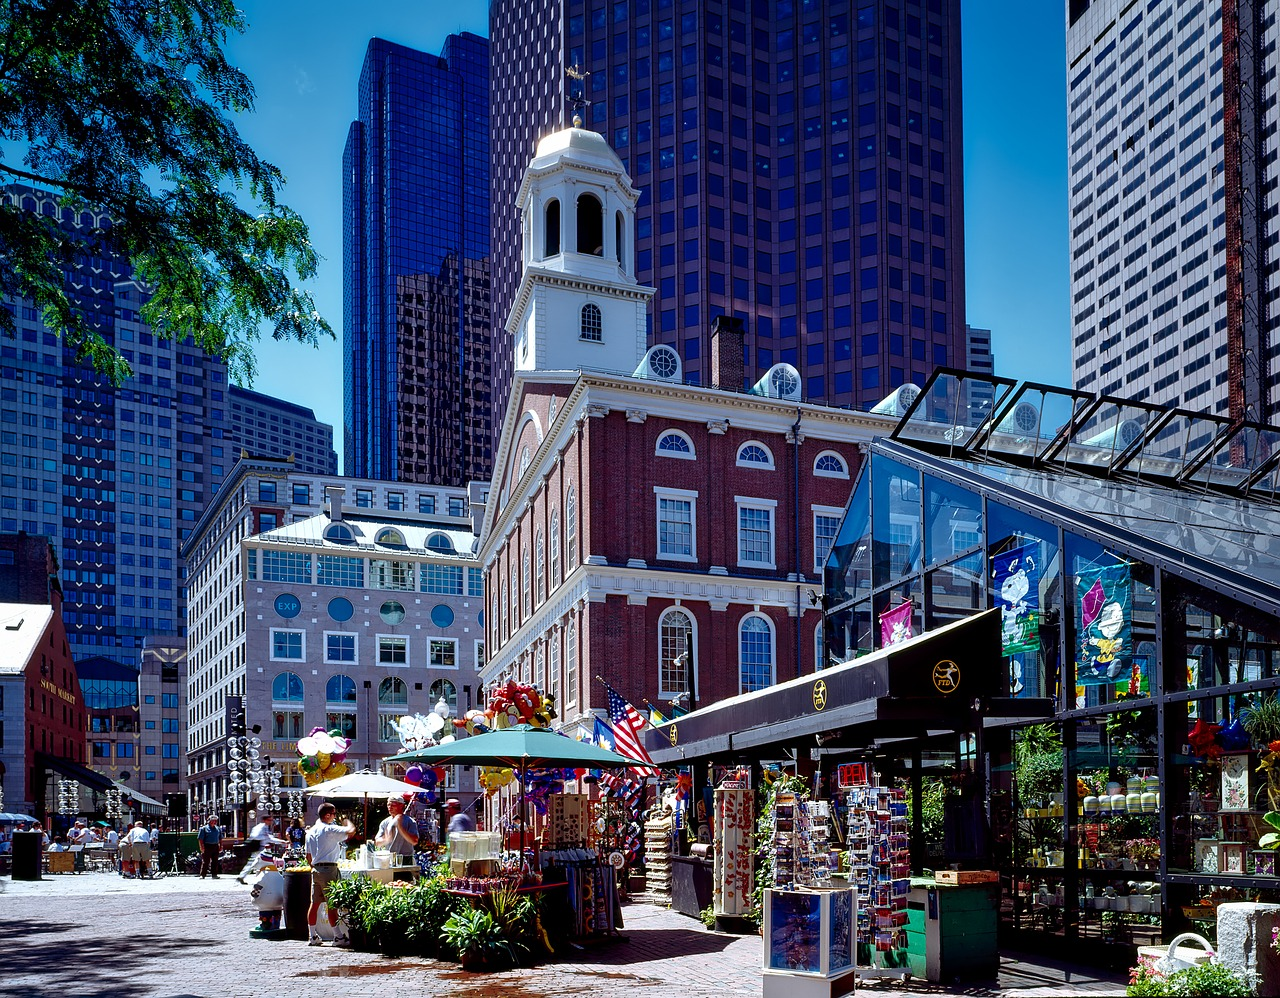 Faneuil Hall and Quincy Market on a walking tour of Boston landmarks